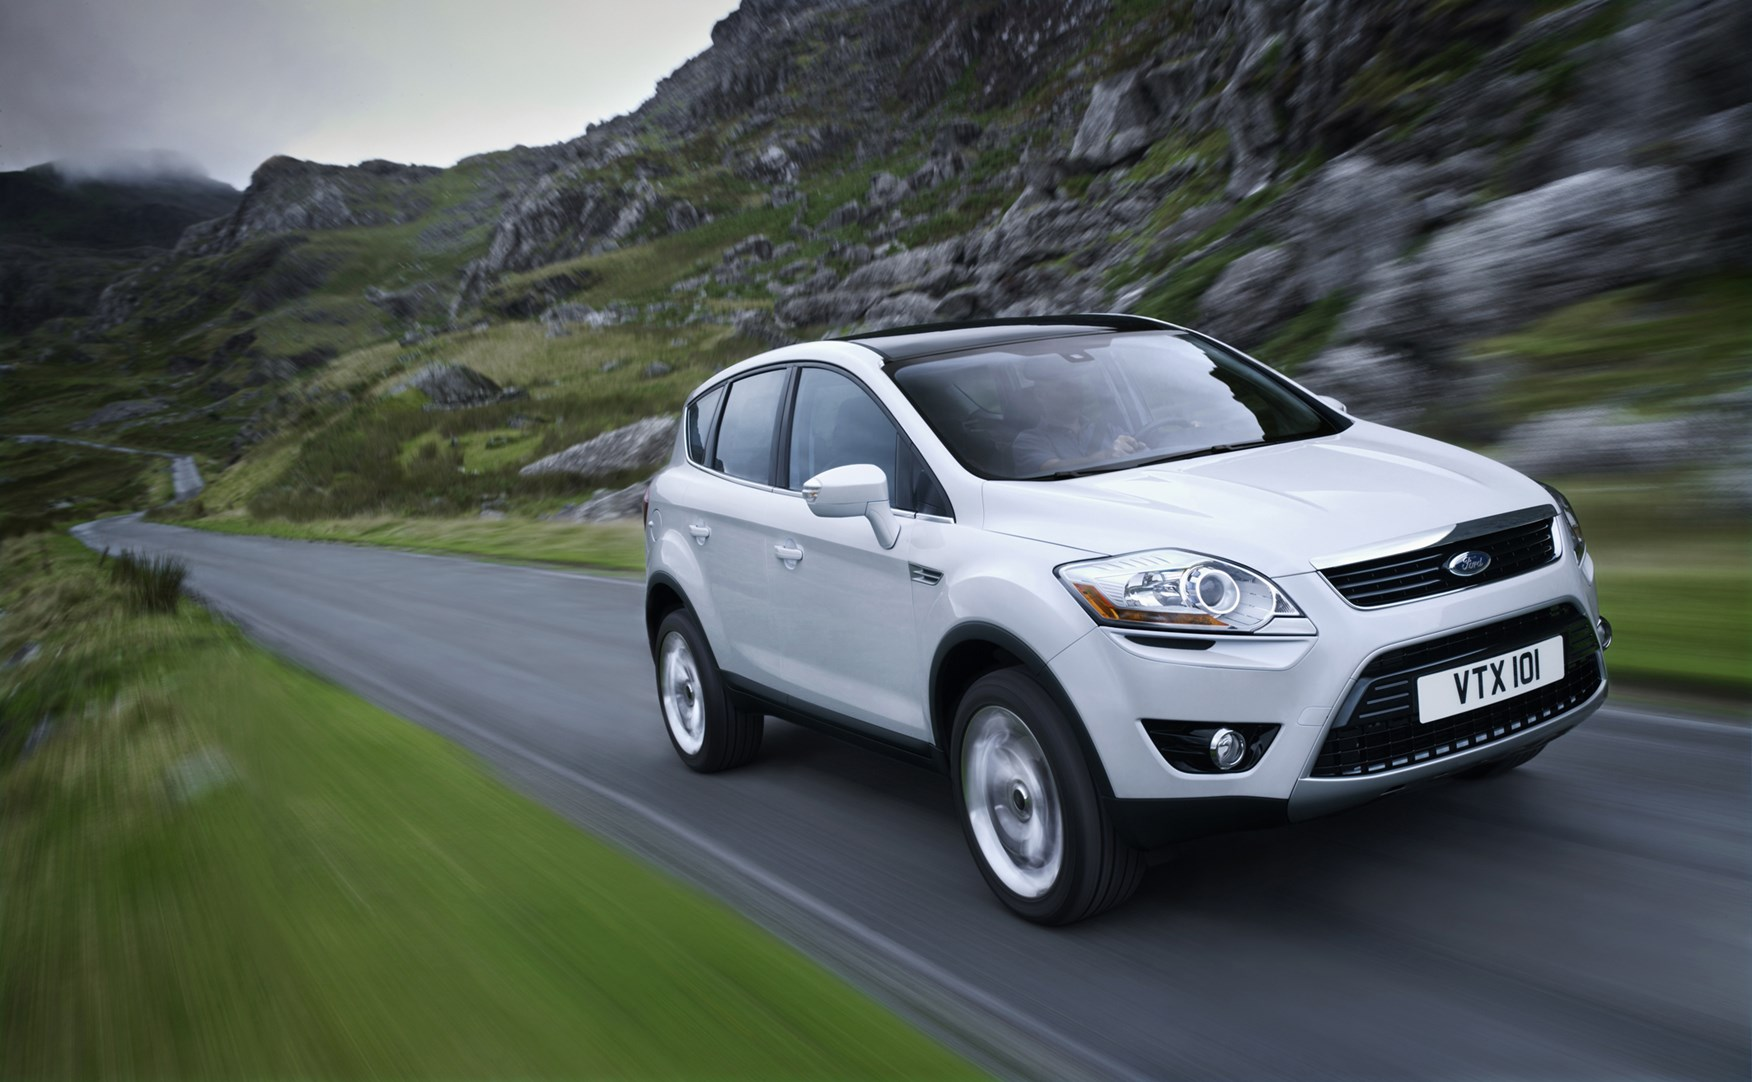 Car Ford Kuga: reviews of owners, specifications and features 3